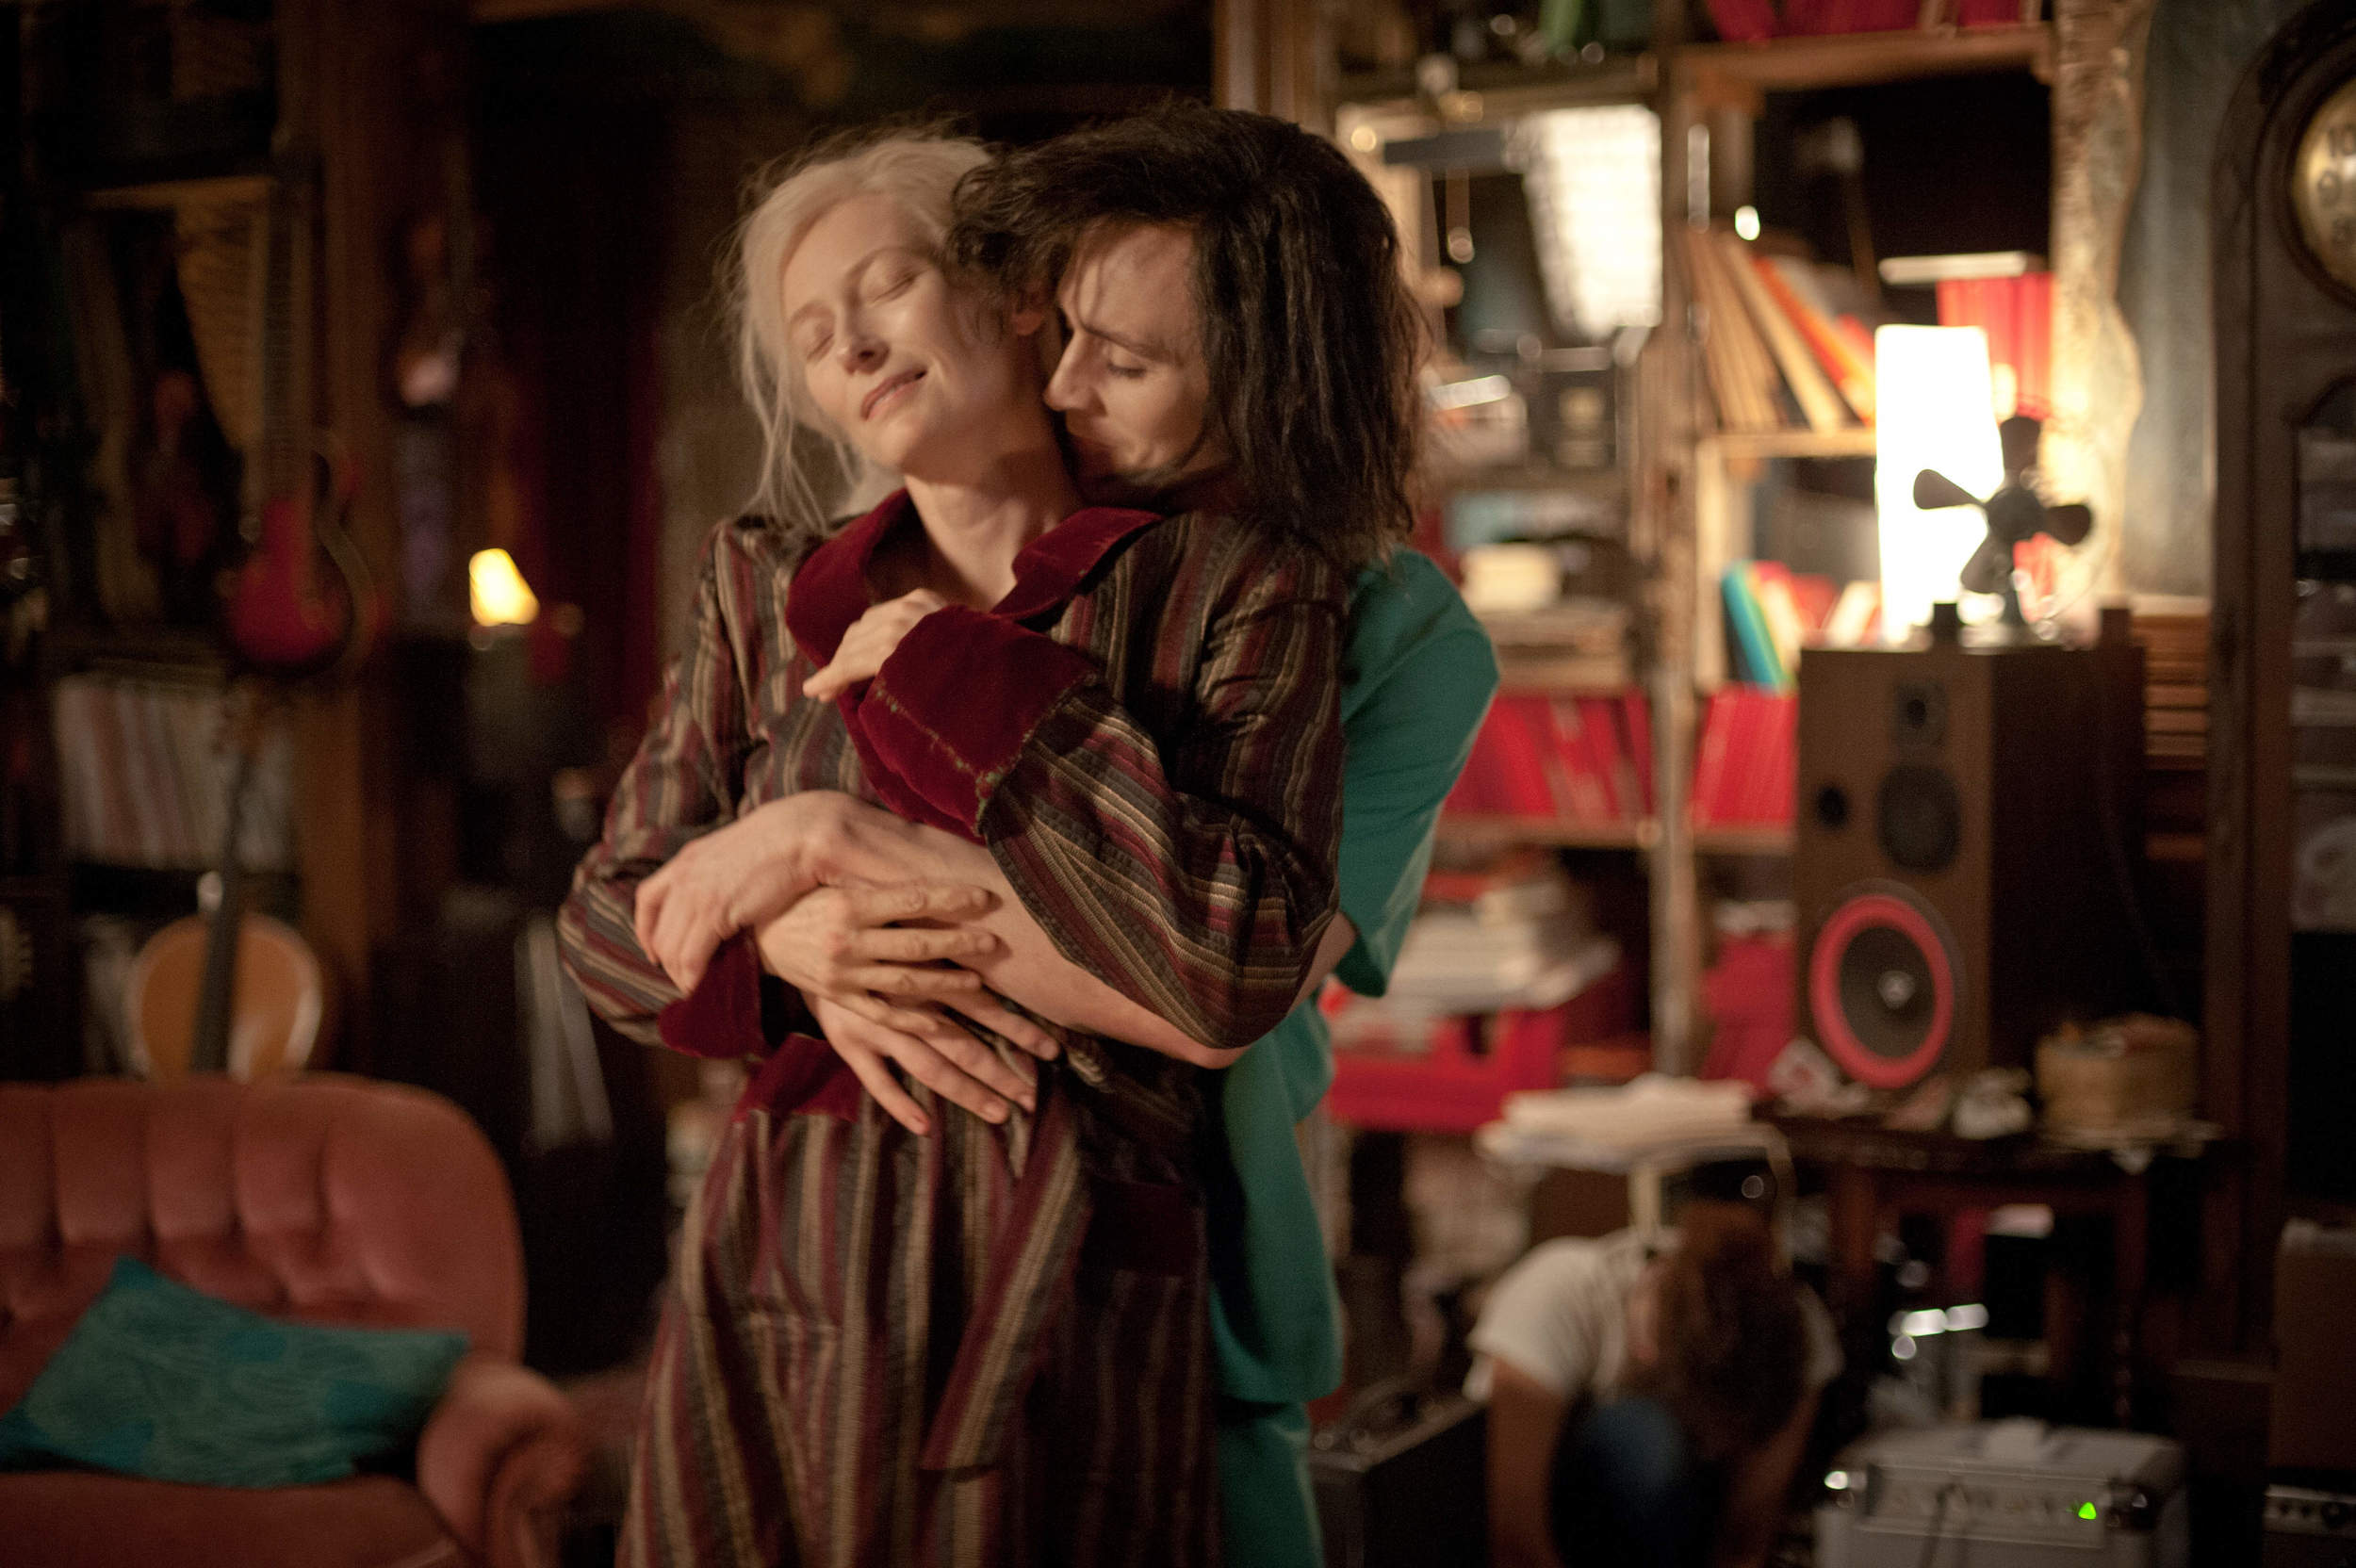 A production still from  Only Lovers Left Alive  featuring Tilda Swinton (as Eve) and Tom Hiddleston (as Adam).